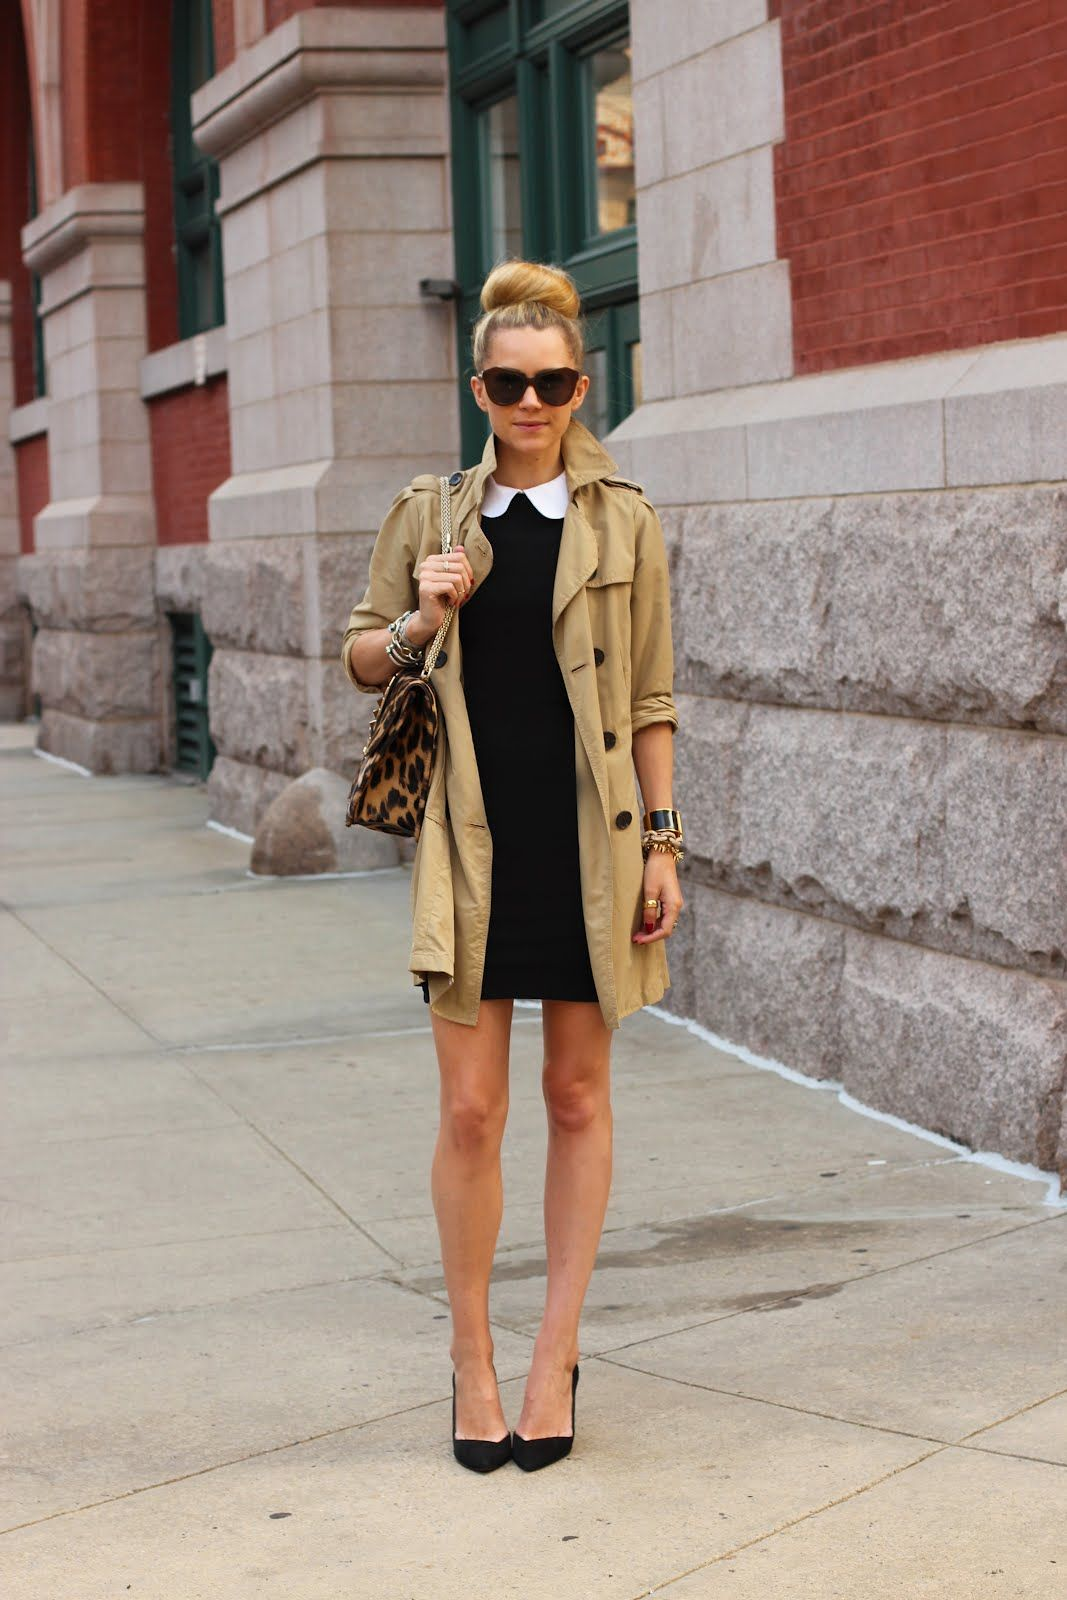 Perfect outfit: classic trench, black stilettos + LBD w/ collar